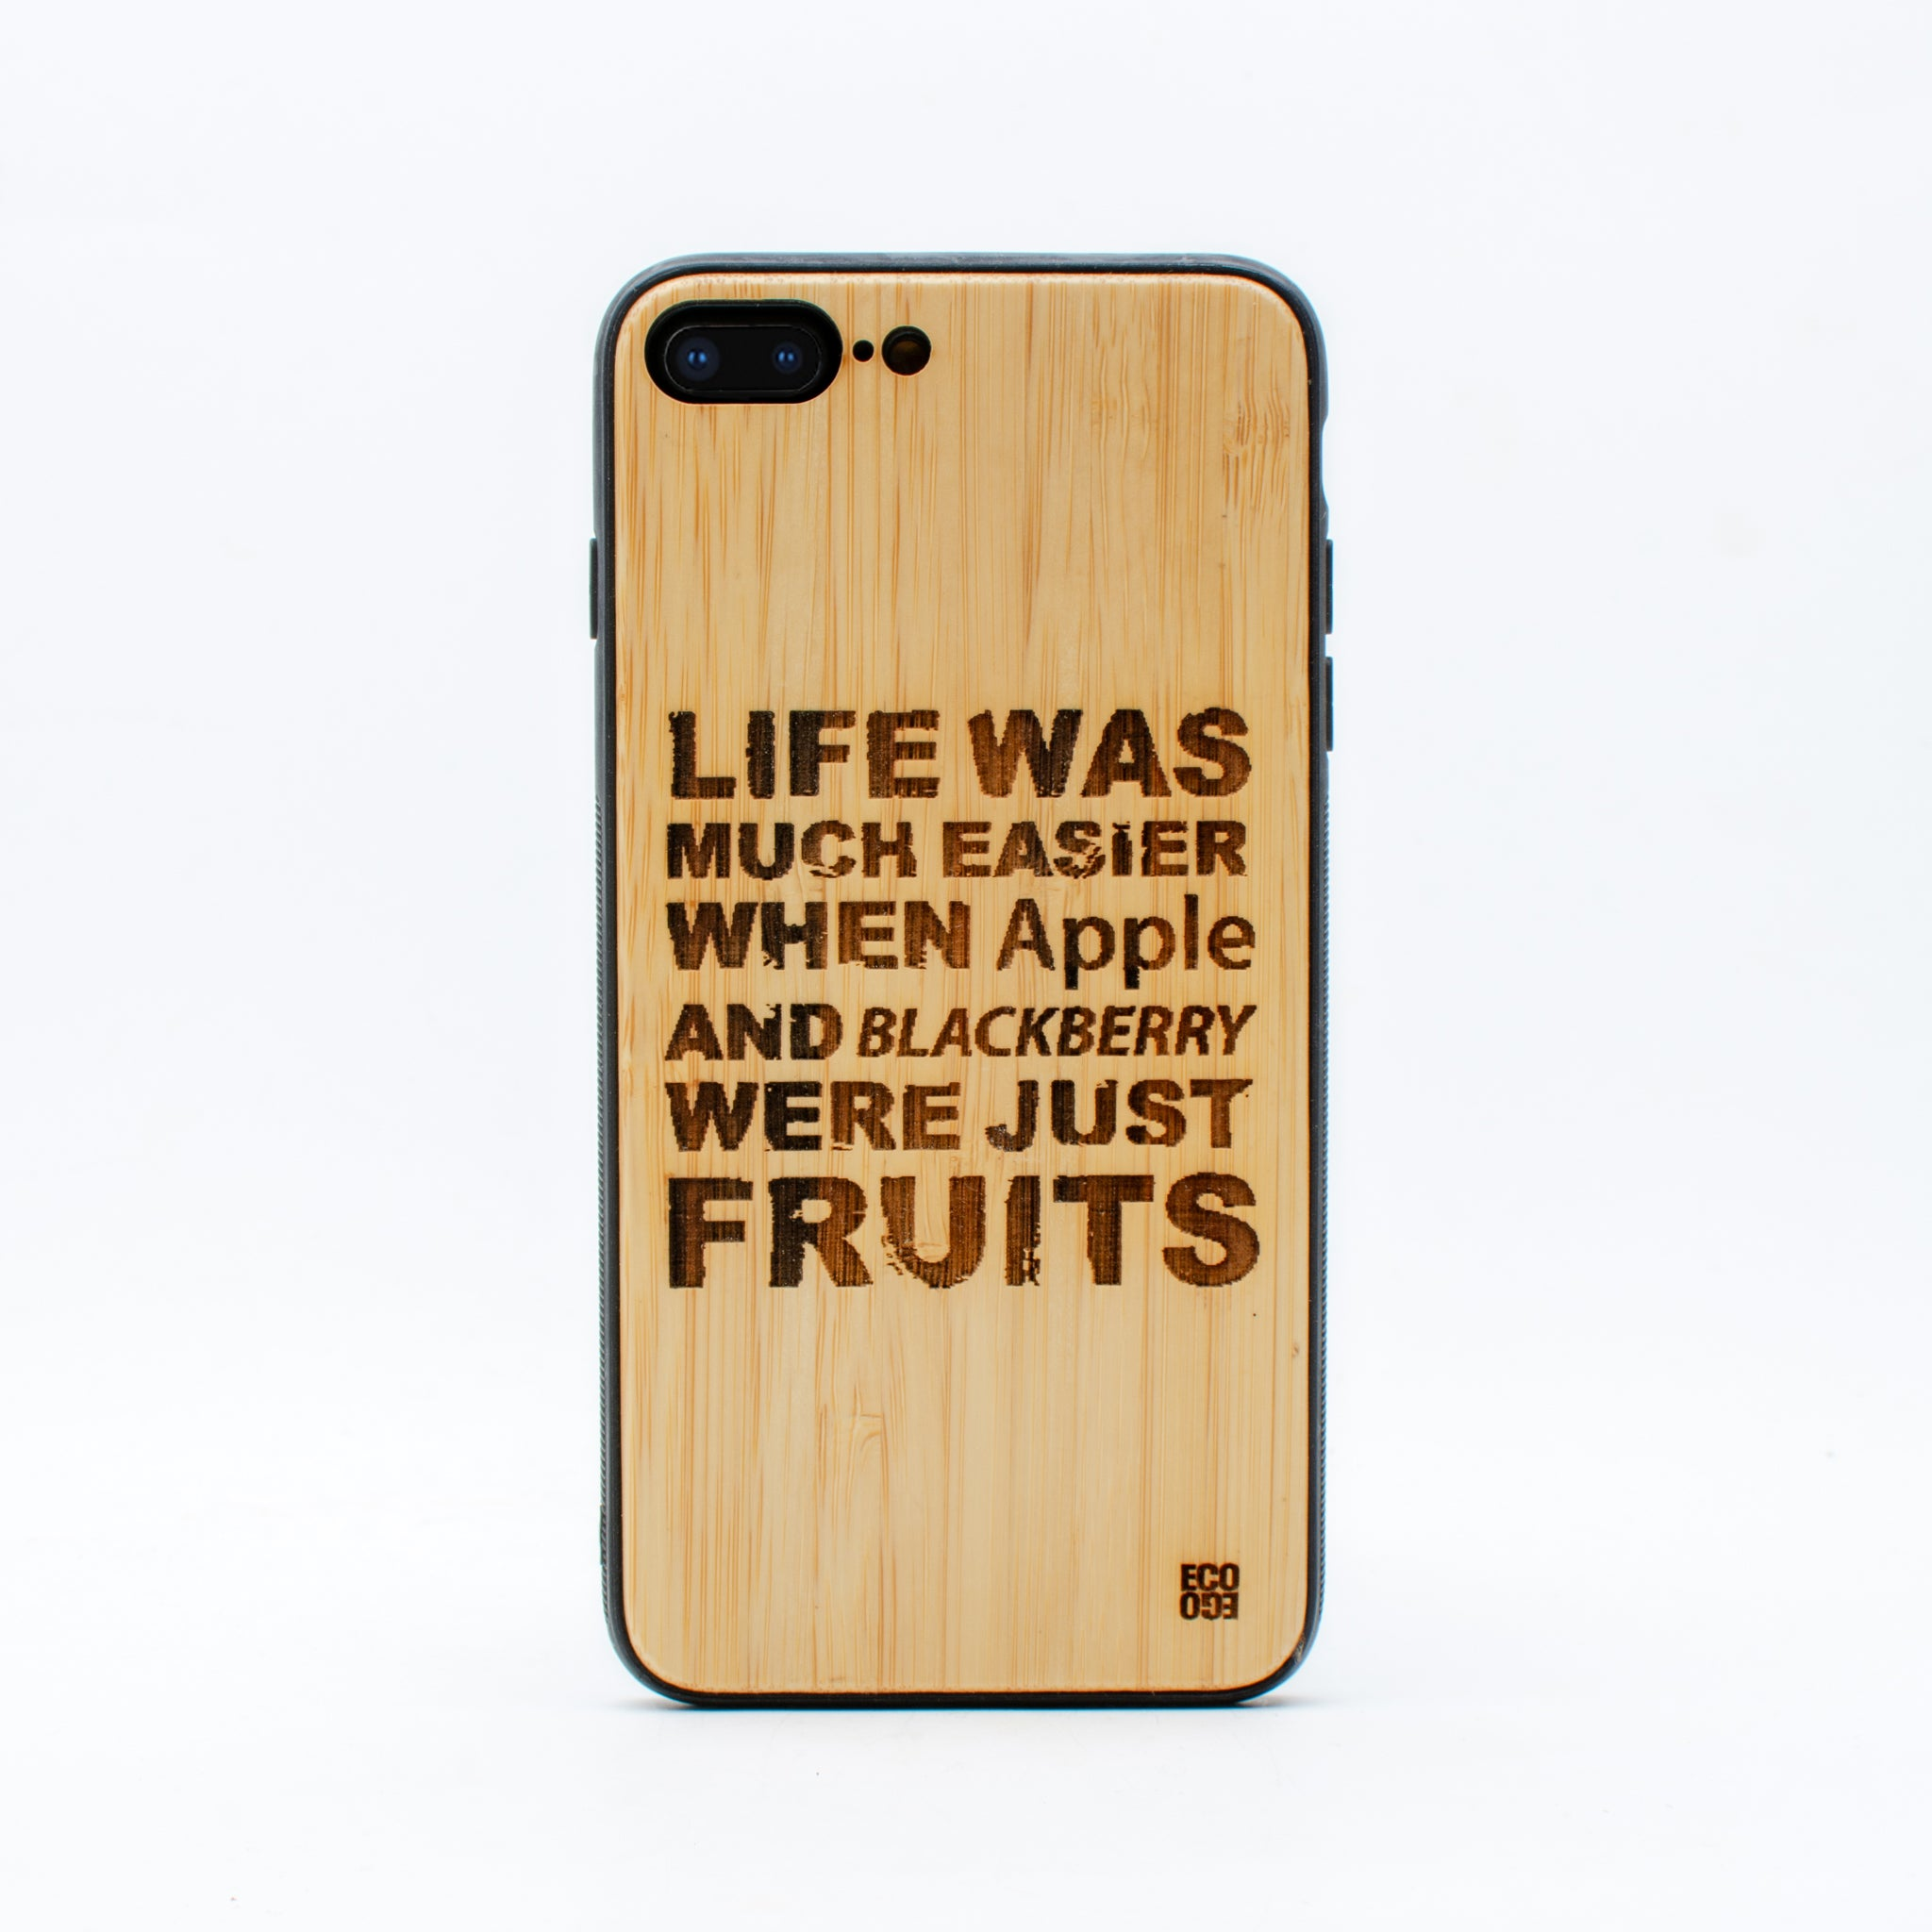 bamboo iphone 7+ case life was ecoego